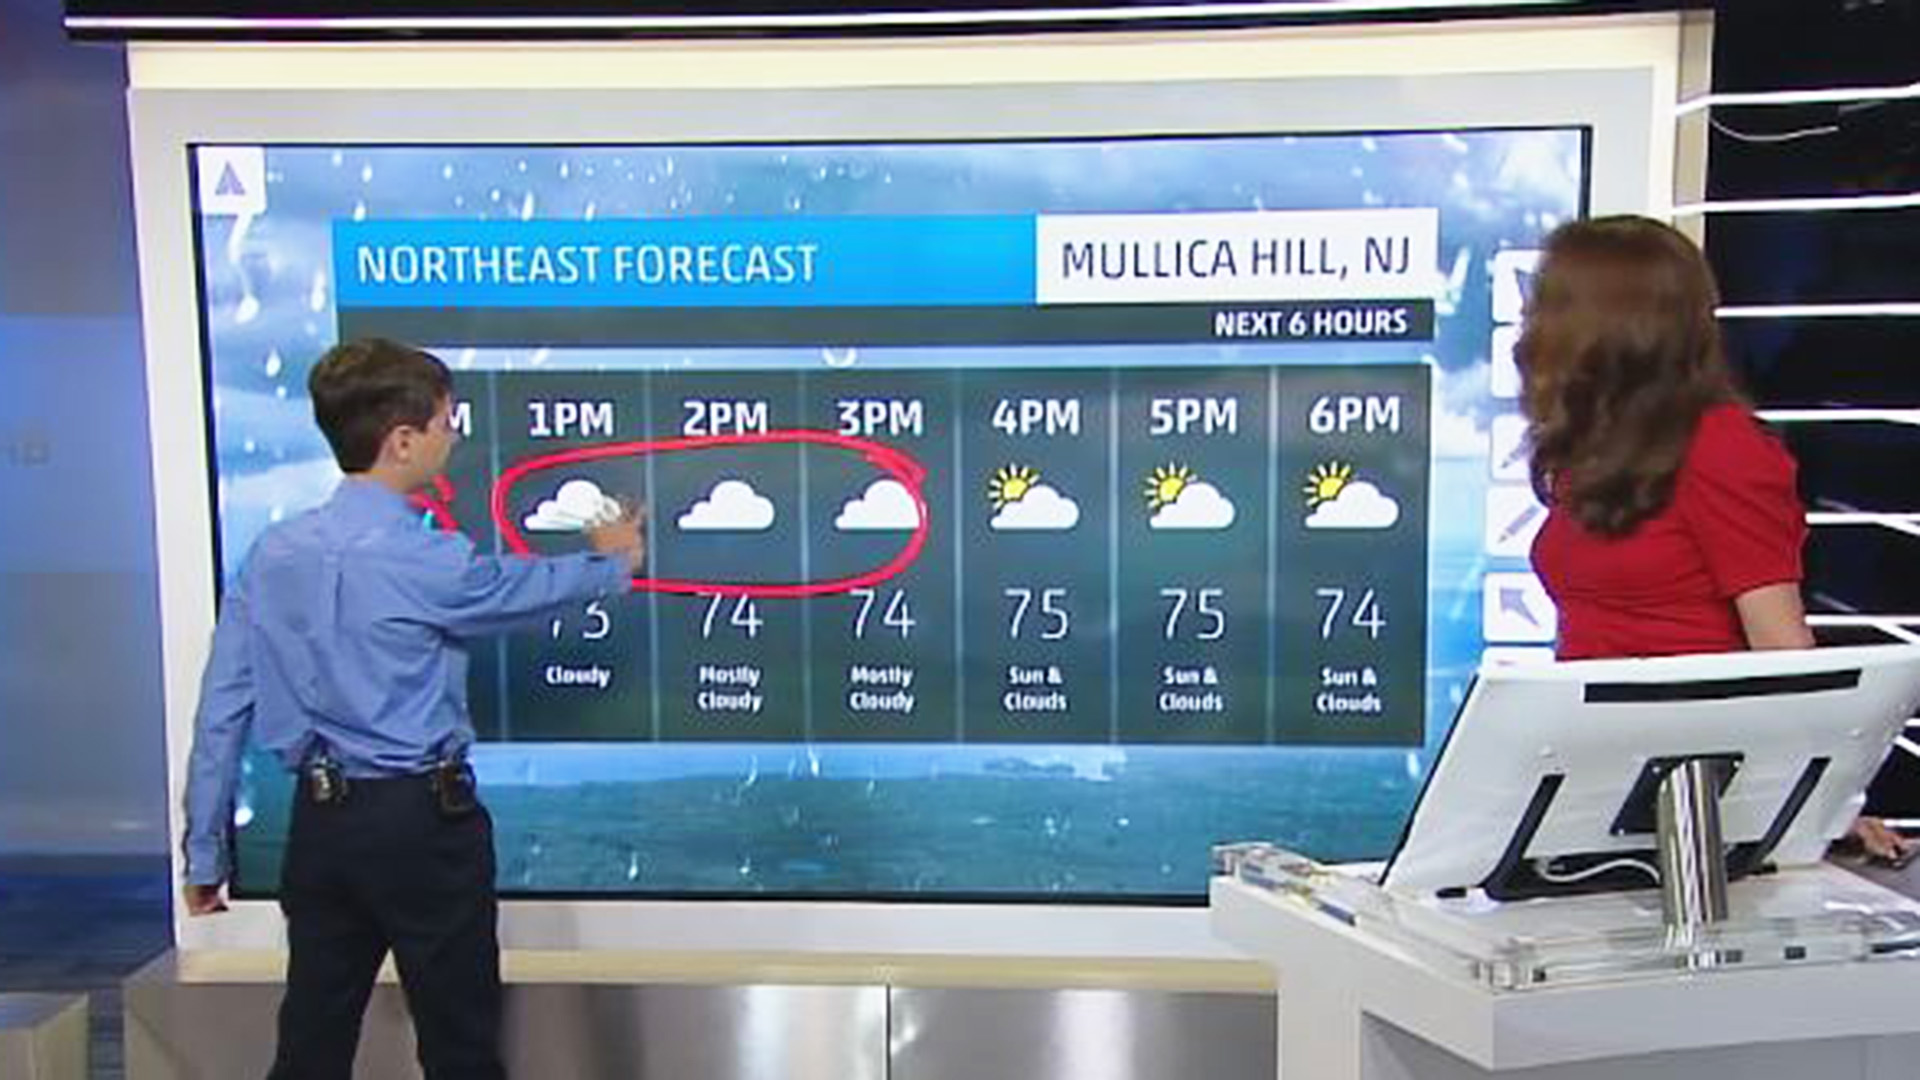 Watch This 11 Year Old Absolutely Crush His Shot At A Live Weather Report